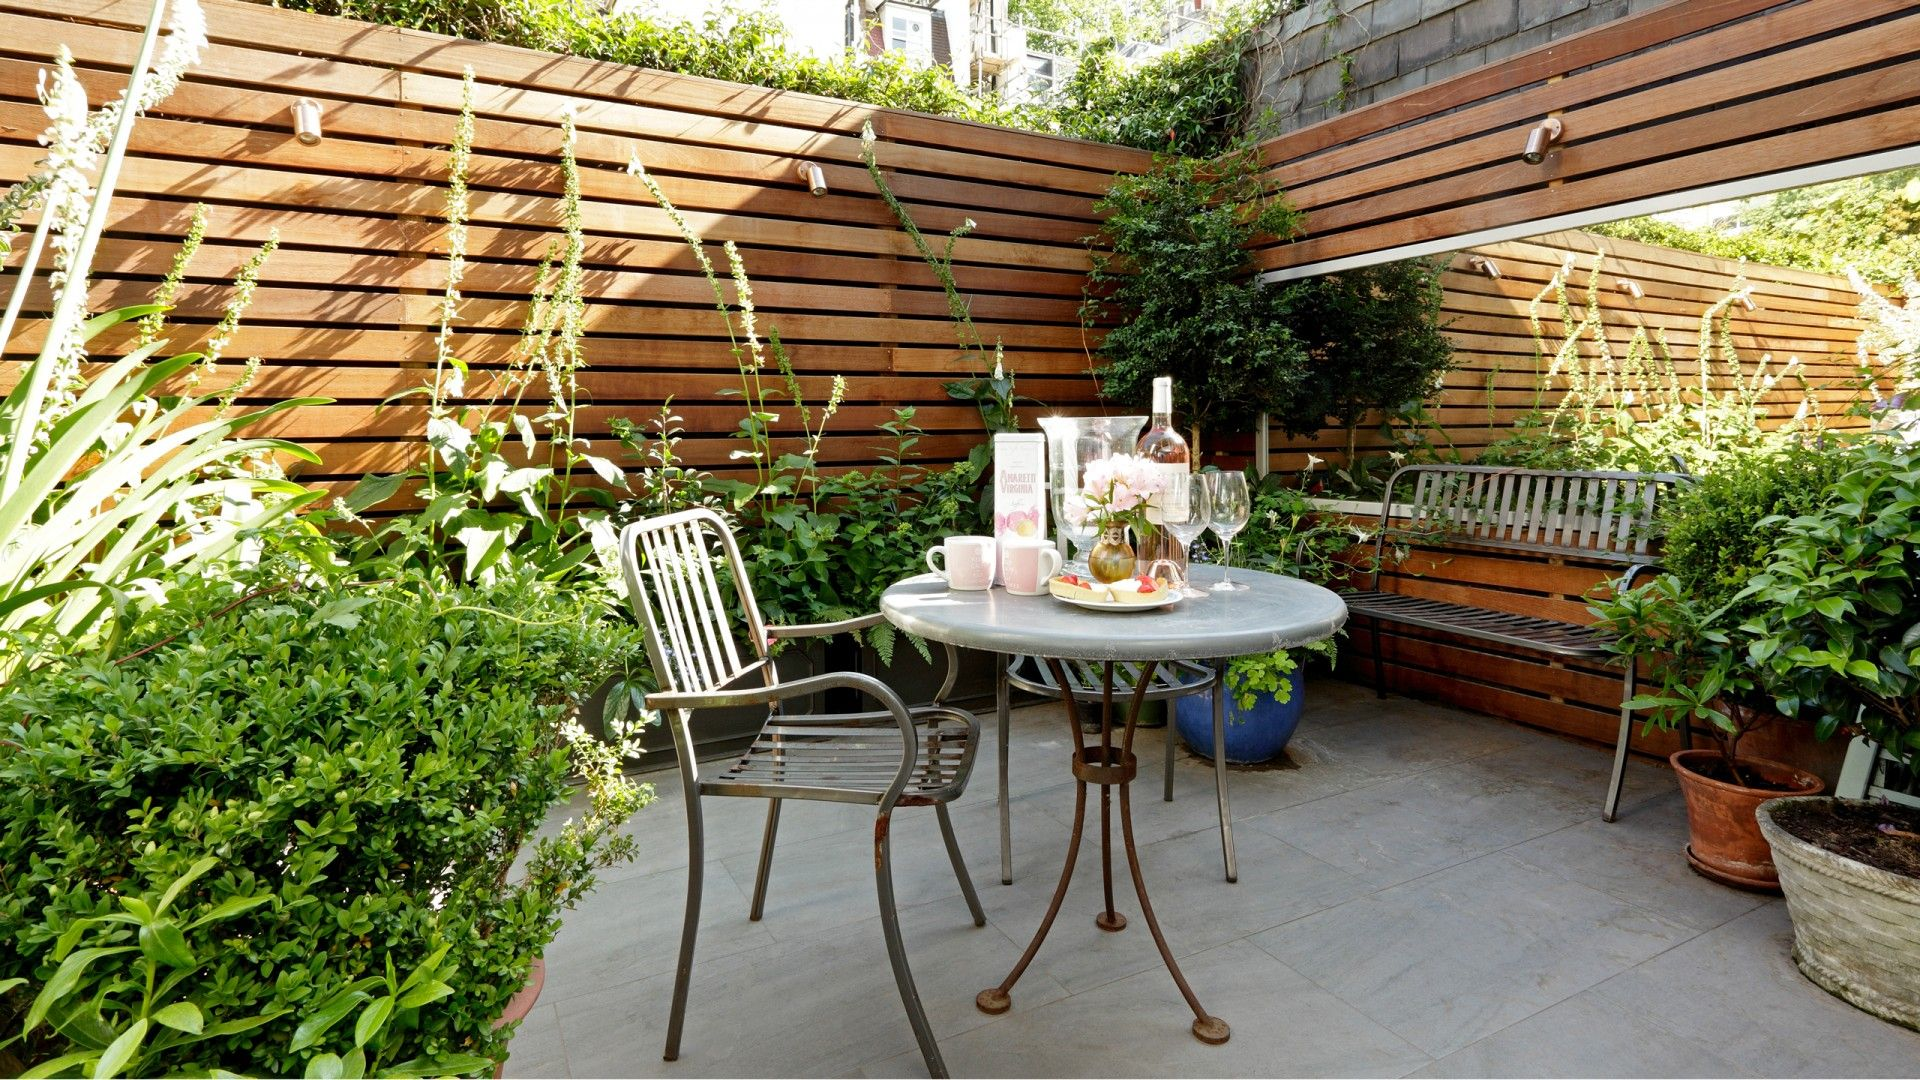 Just because you don't have a big lawn area, doesn't mean you can't make the most of your space. Create the perfect alfresco dining setting in an enclosed patio. The large mirror makes the whole area feel a lot bigger than it actually is.